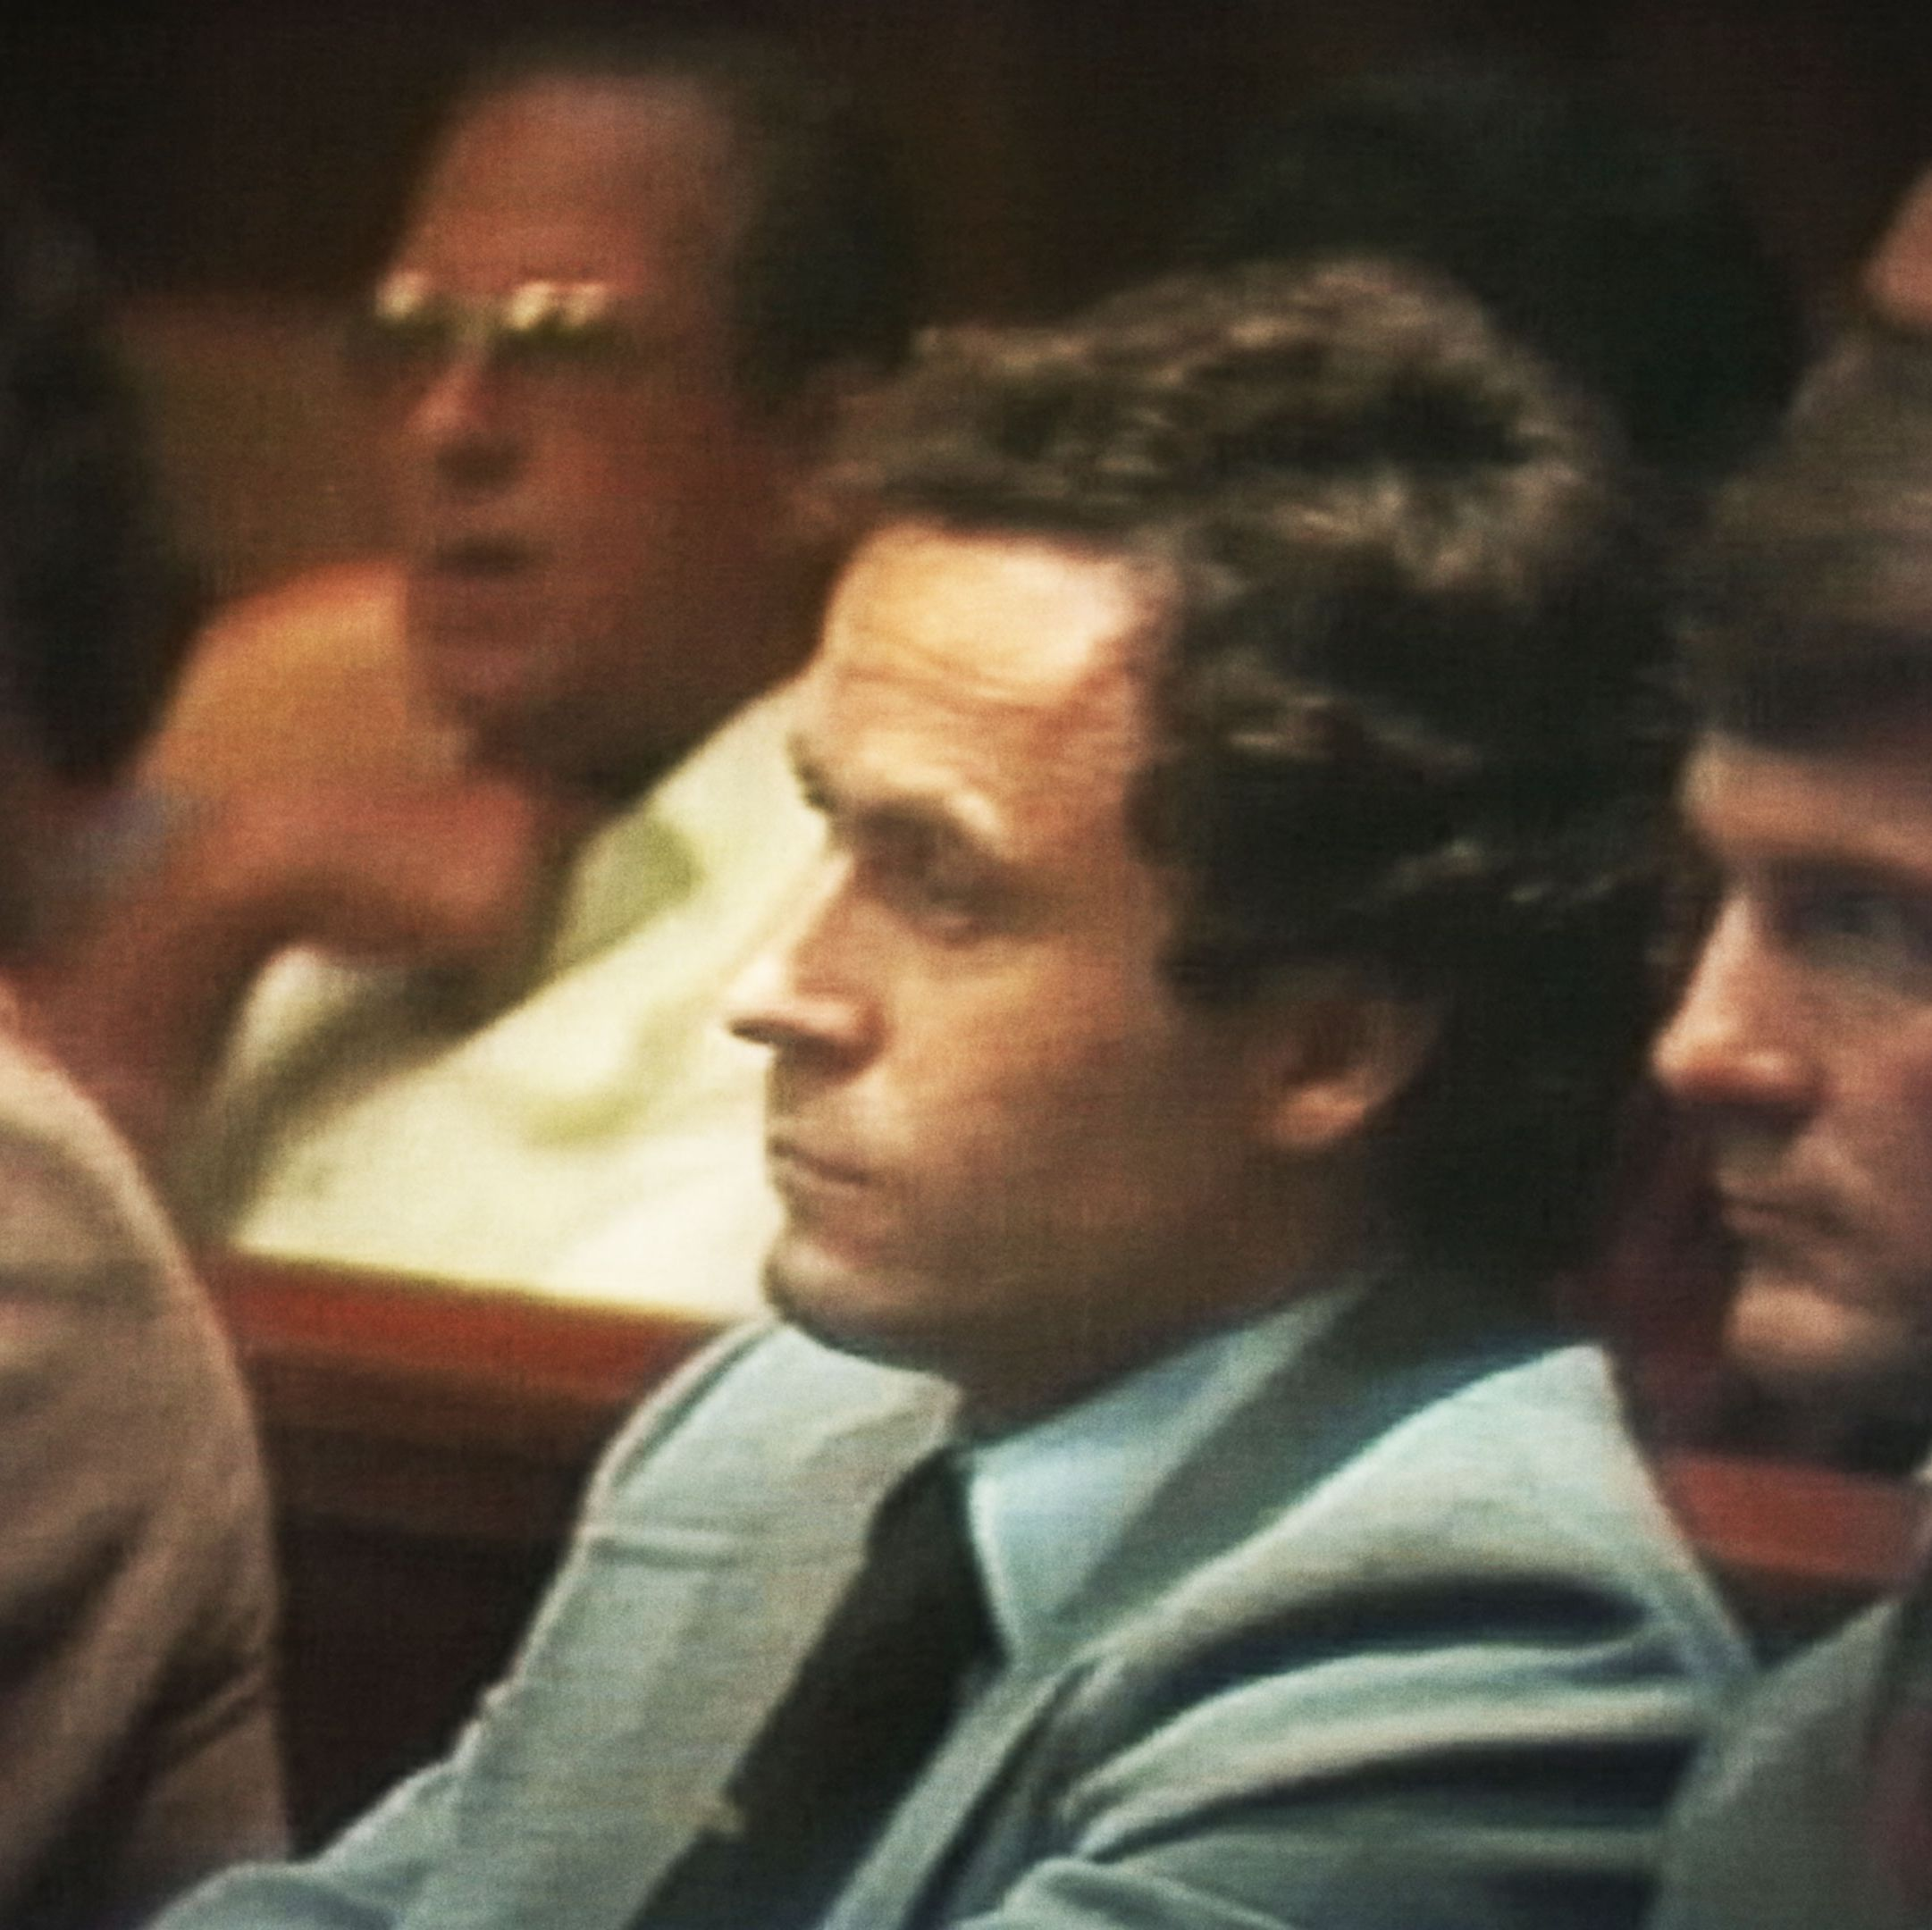 Everything You Need to Know About Ted Bundy's Daughter